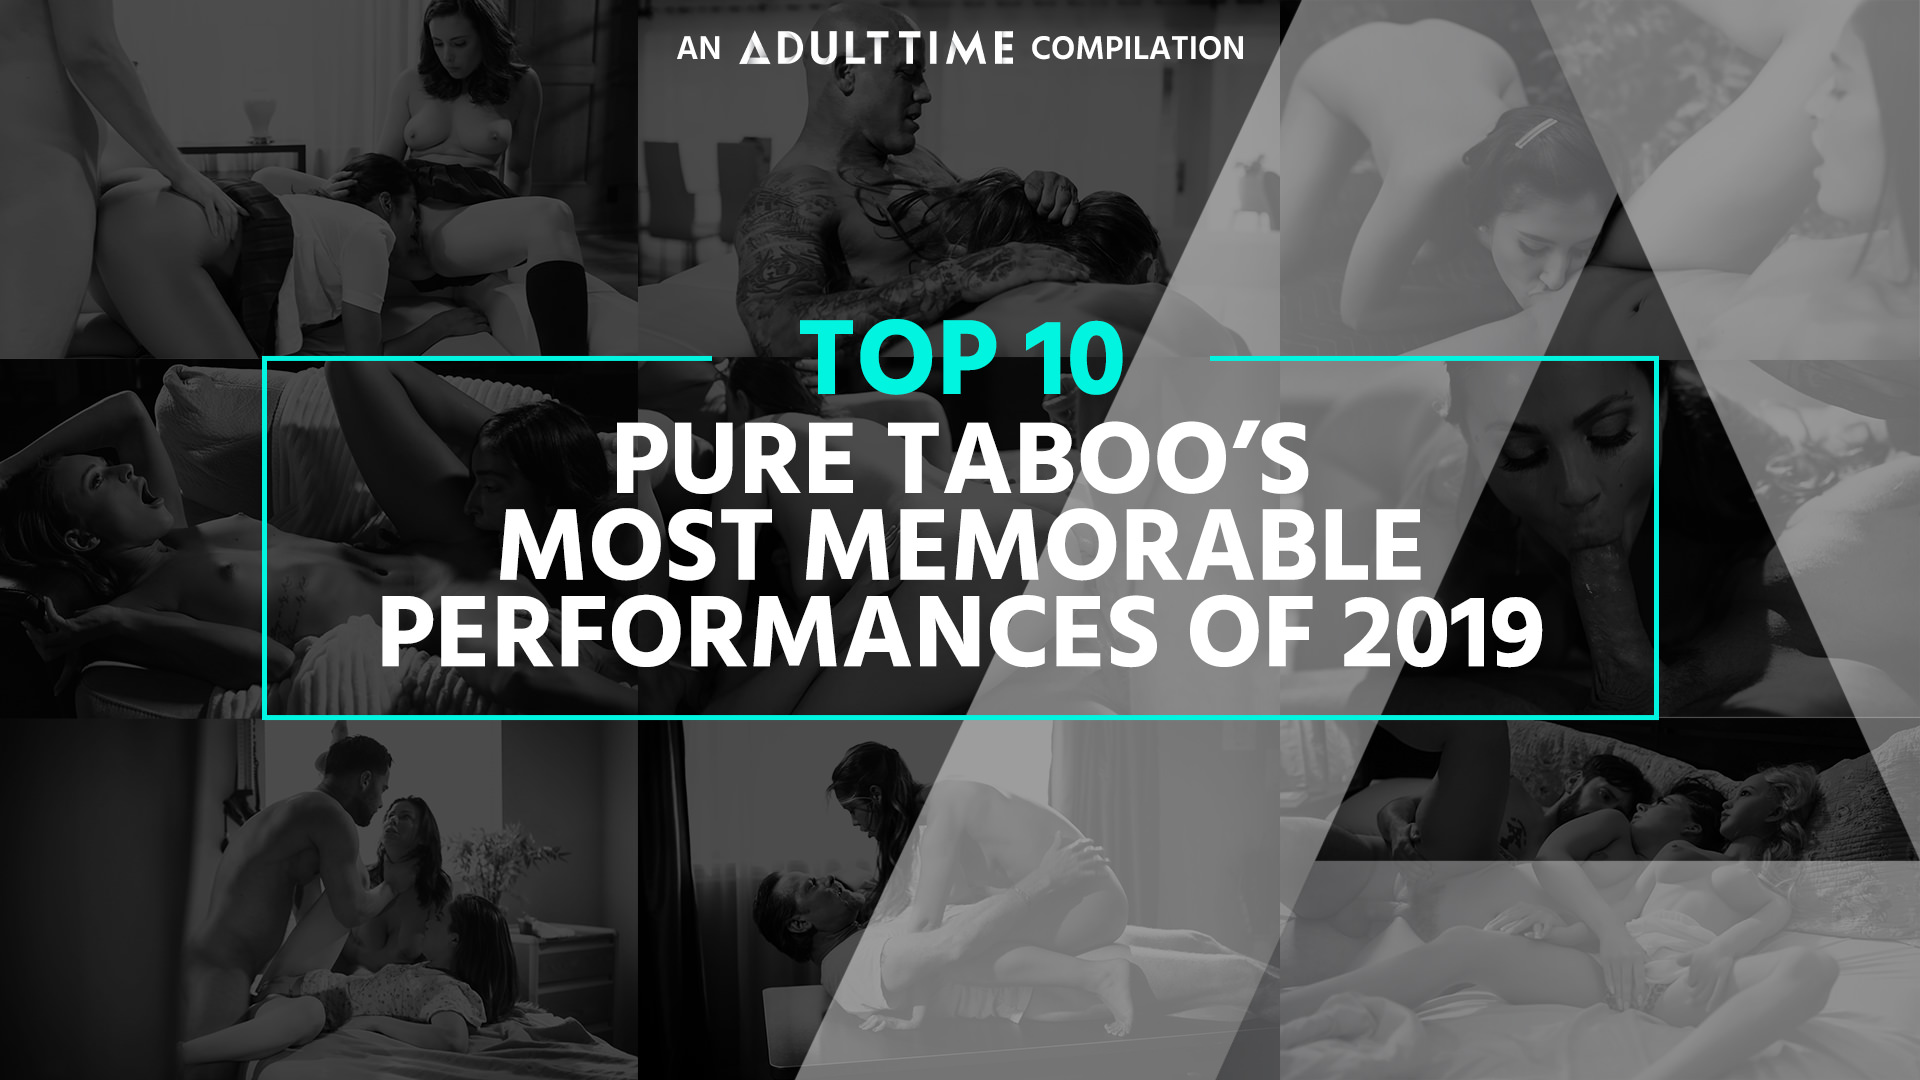 Top 10 - Pure Taboo's Most Memorable Performances Of 2019 - Derrick Pierce & Dick Chibbles & Tommy Pistol & Abigail Mac & Casey Calvert & Alexis Fawx & Chanel Preston & Bobbi Dylan & Angela White & Emma Hix & Whitney Wright & Alina Lopez & Emily Willis & Gianna Dior & Michael Vegas & Seth Gamble & Codey Steele & Jay Taylor & Nathan Bronson & Gia Derza & Justin Hunt & Vienna Black & Evelyn Claire 1